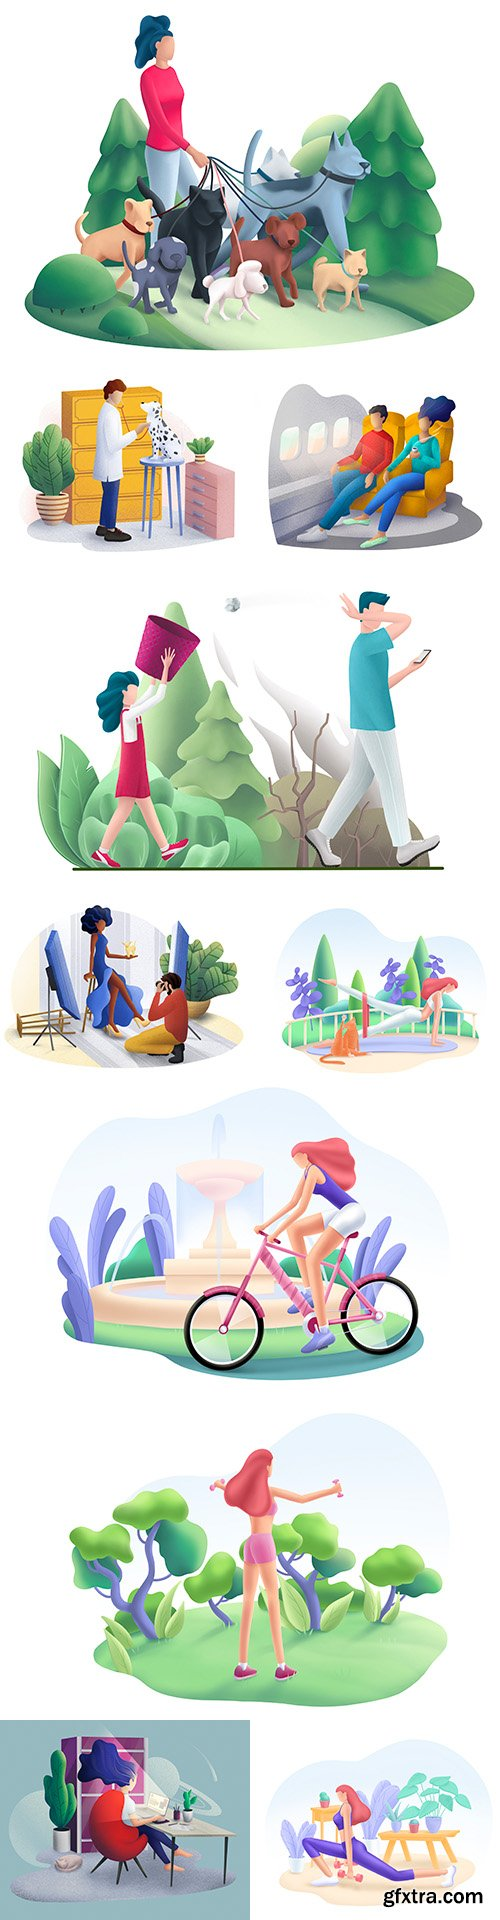 People and nature engaging in outdoor sports illustrations